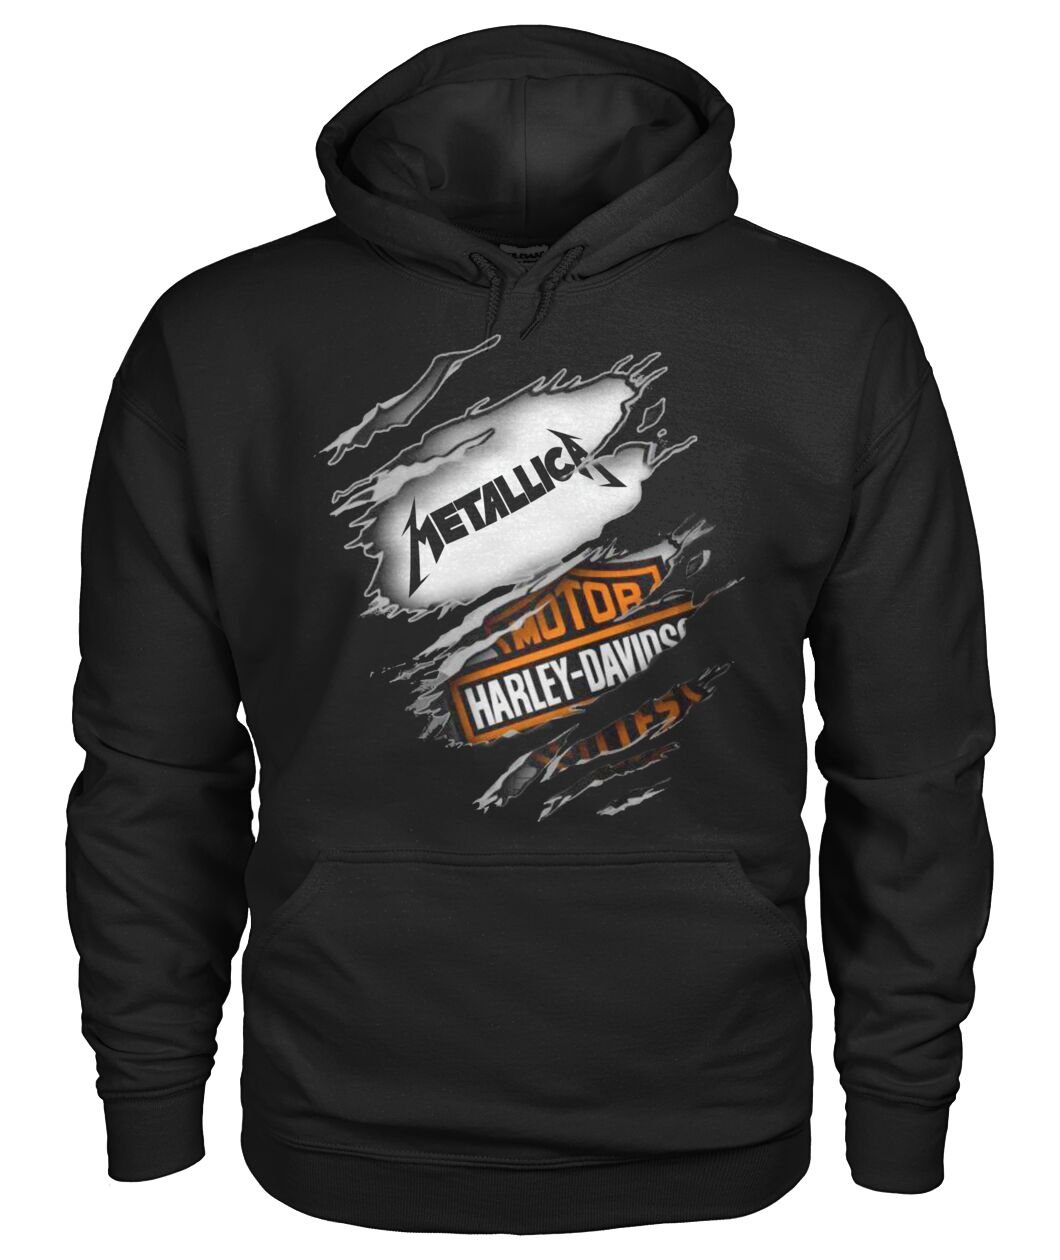 harley-davidson motorcycles and metallica rock band hoodie